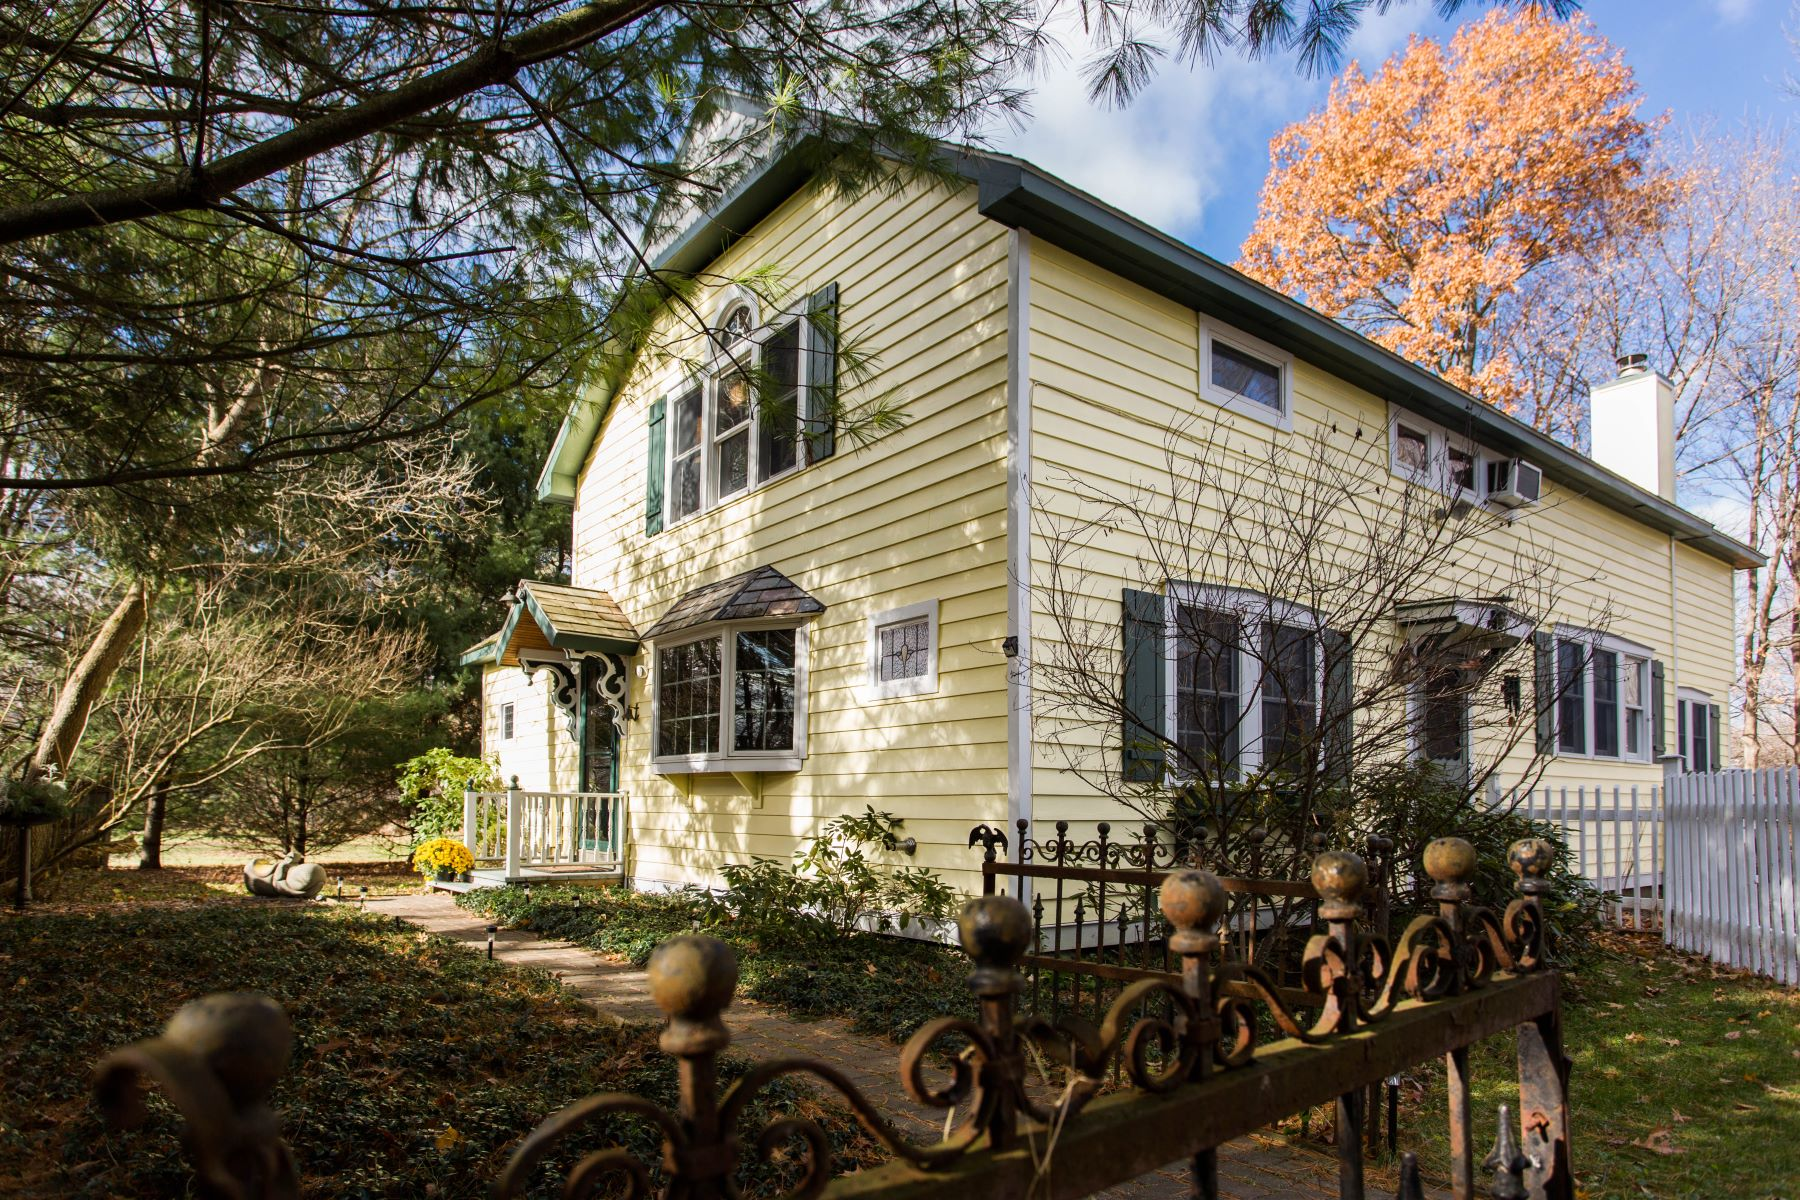 Single Family Home for Sale at Tucked Away Carriage House 12A Avenue A Cambridge, New York 12816 United States